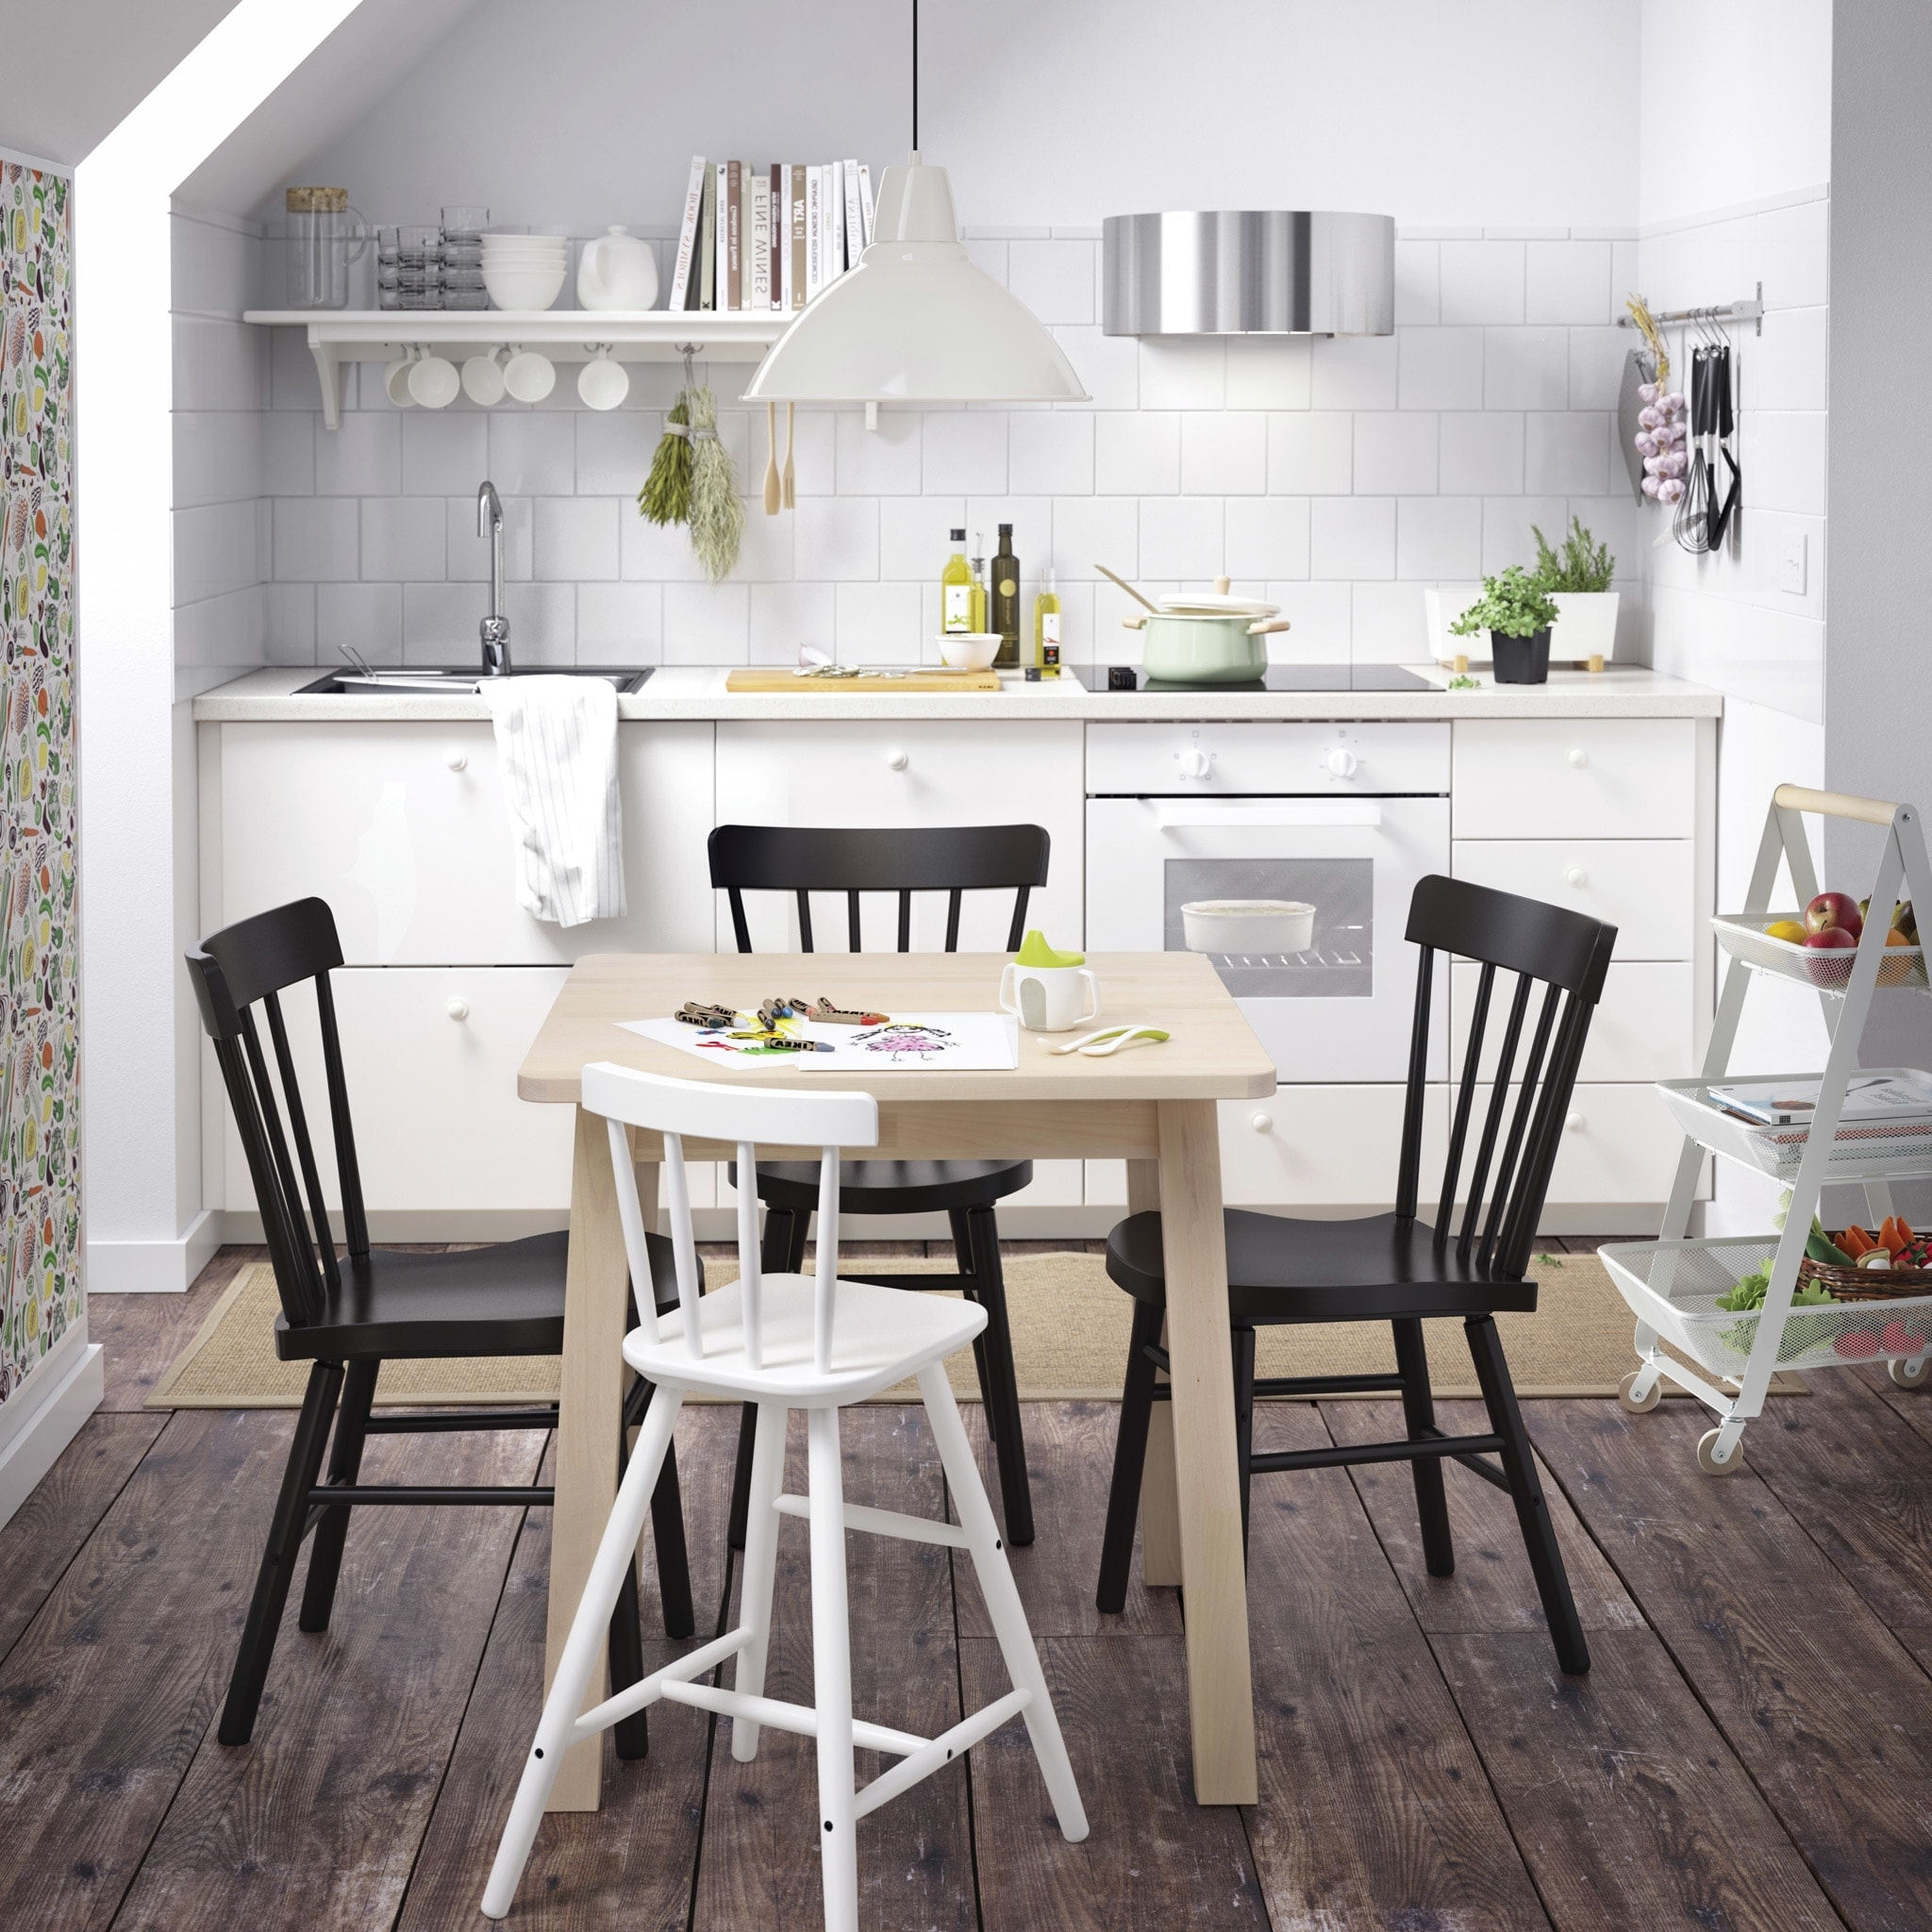 Ikea Intended For Well Known Small Dining Tables And Chairs (View 11 of 25)